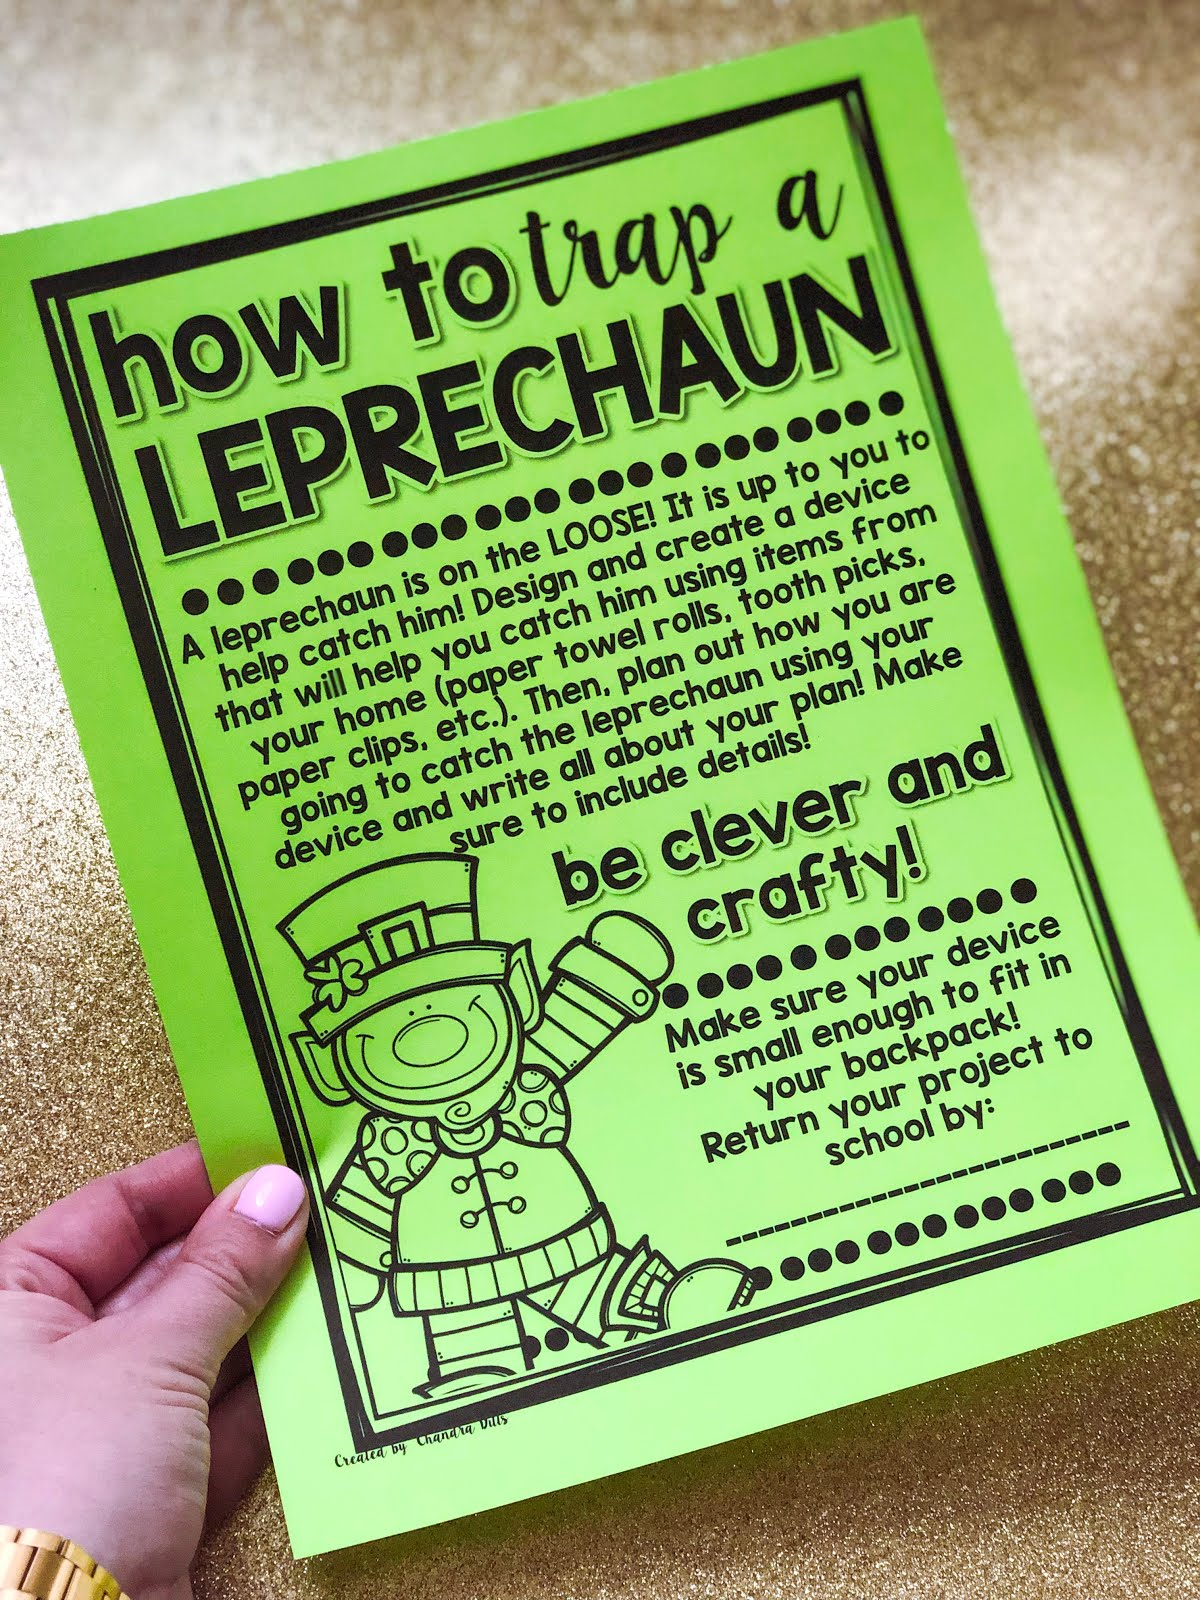 Ideas For St Patrick S Day In The Classroom Teaching With Crayons